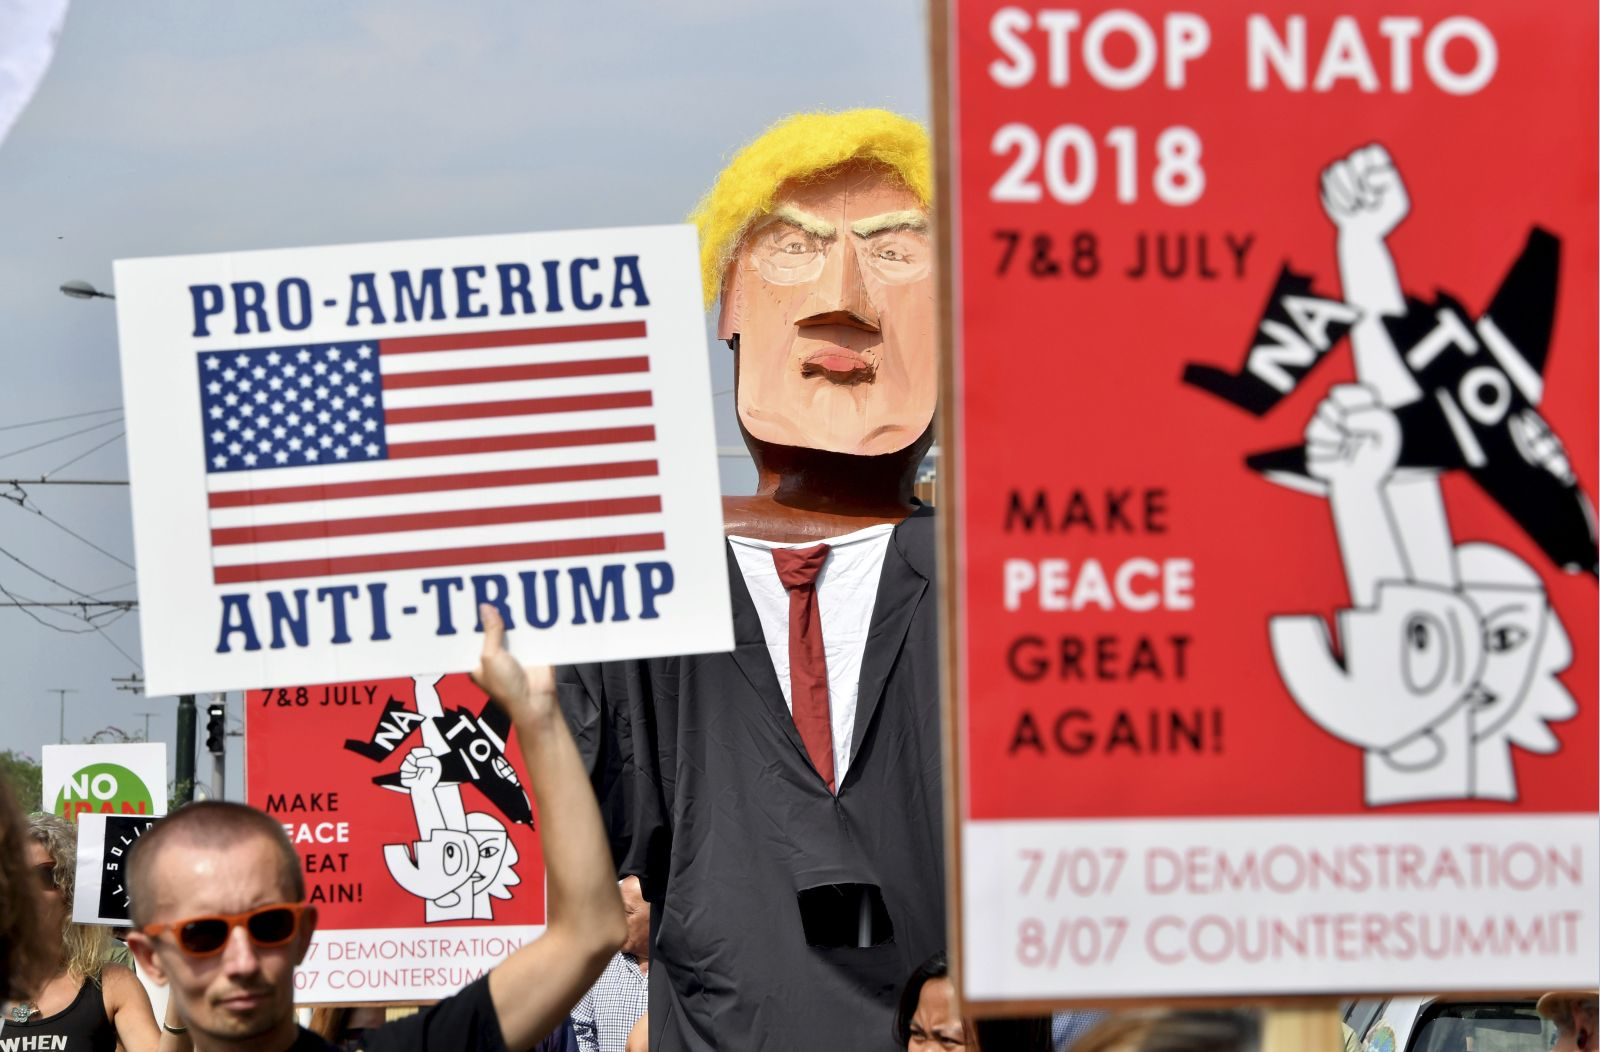 A protestor marches next to giant puppet of U.S. President Donald Trump, right, as he holds a sign which reads Pro-America, Anti-Trump during a demonstration in Brussels, Saturday, July 7, 2018. European activists are protesting U.S. President Donald Trumps upcoming appearance at a NATO summit, marching through Brussels to plead for less military spending and more public money for schools and clean energy. (AP Photo/Geert Vanden Wijngaert)